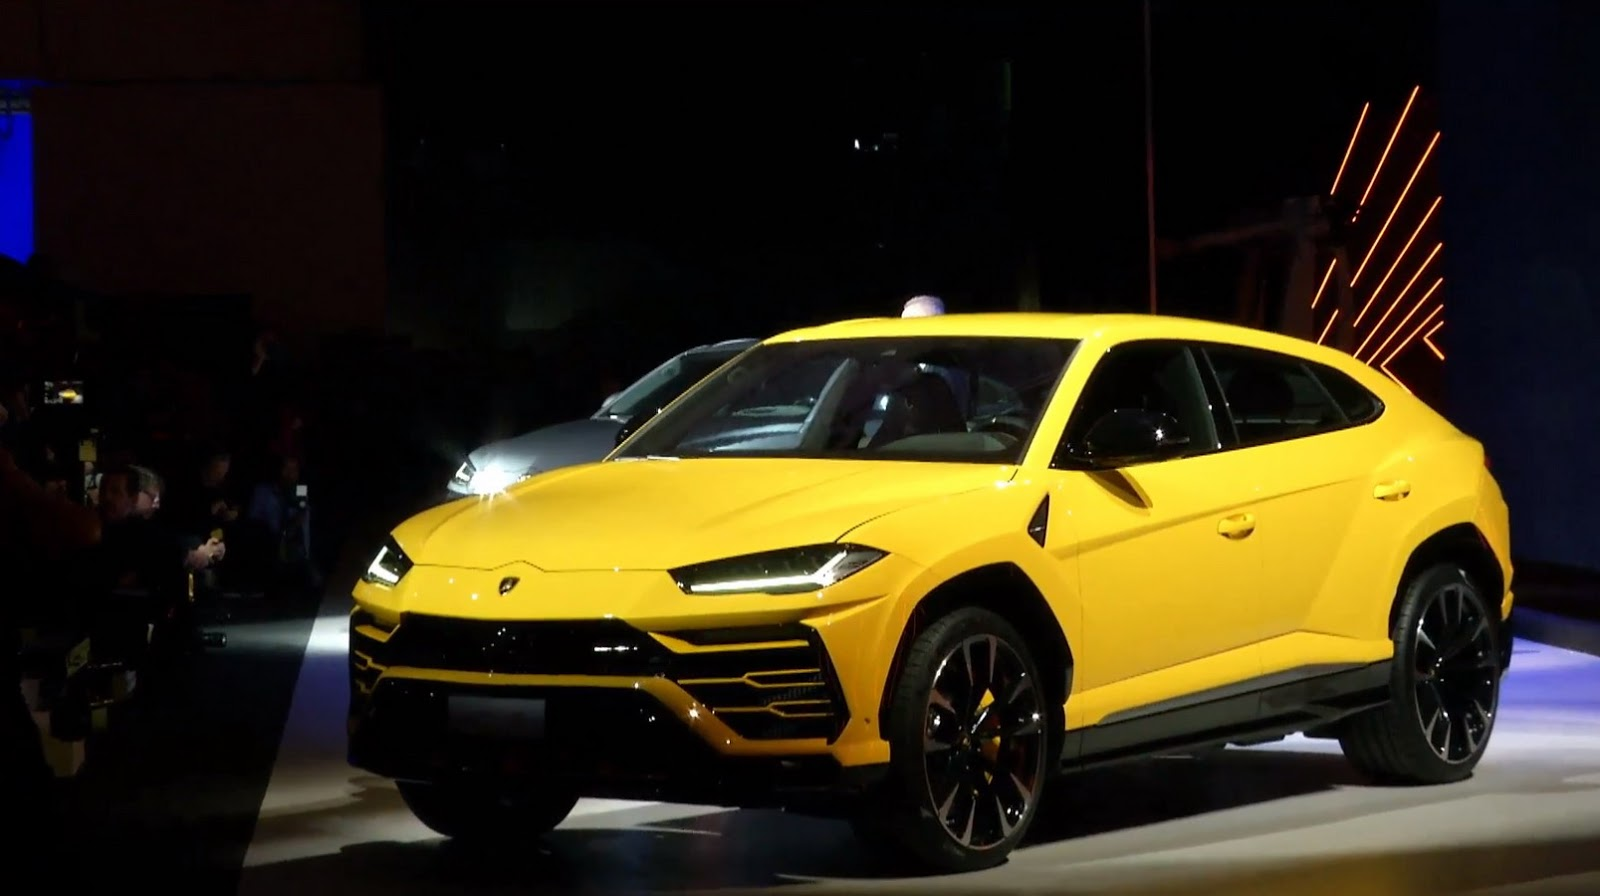 Cool Suv 2017 >> Lamborghini Launches Urus Super SUV, Gives It 641HP To Play With   Carscoops